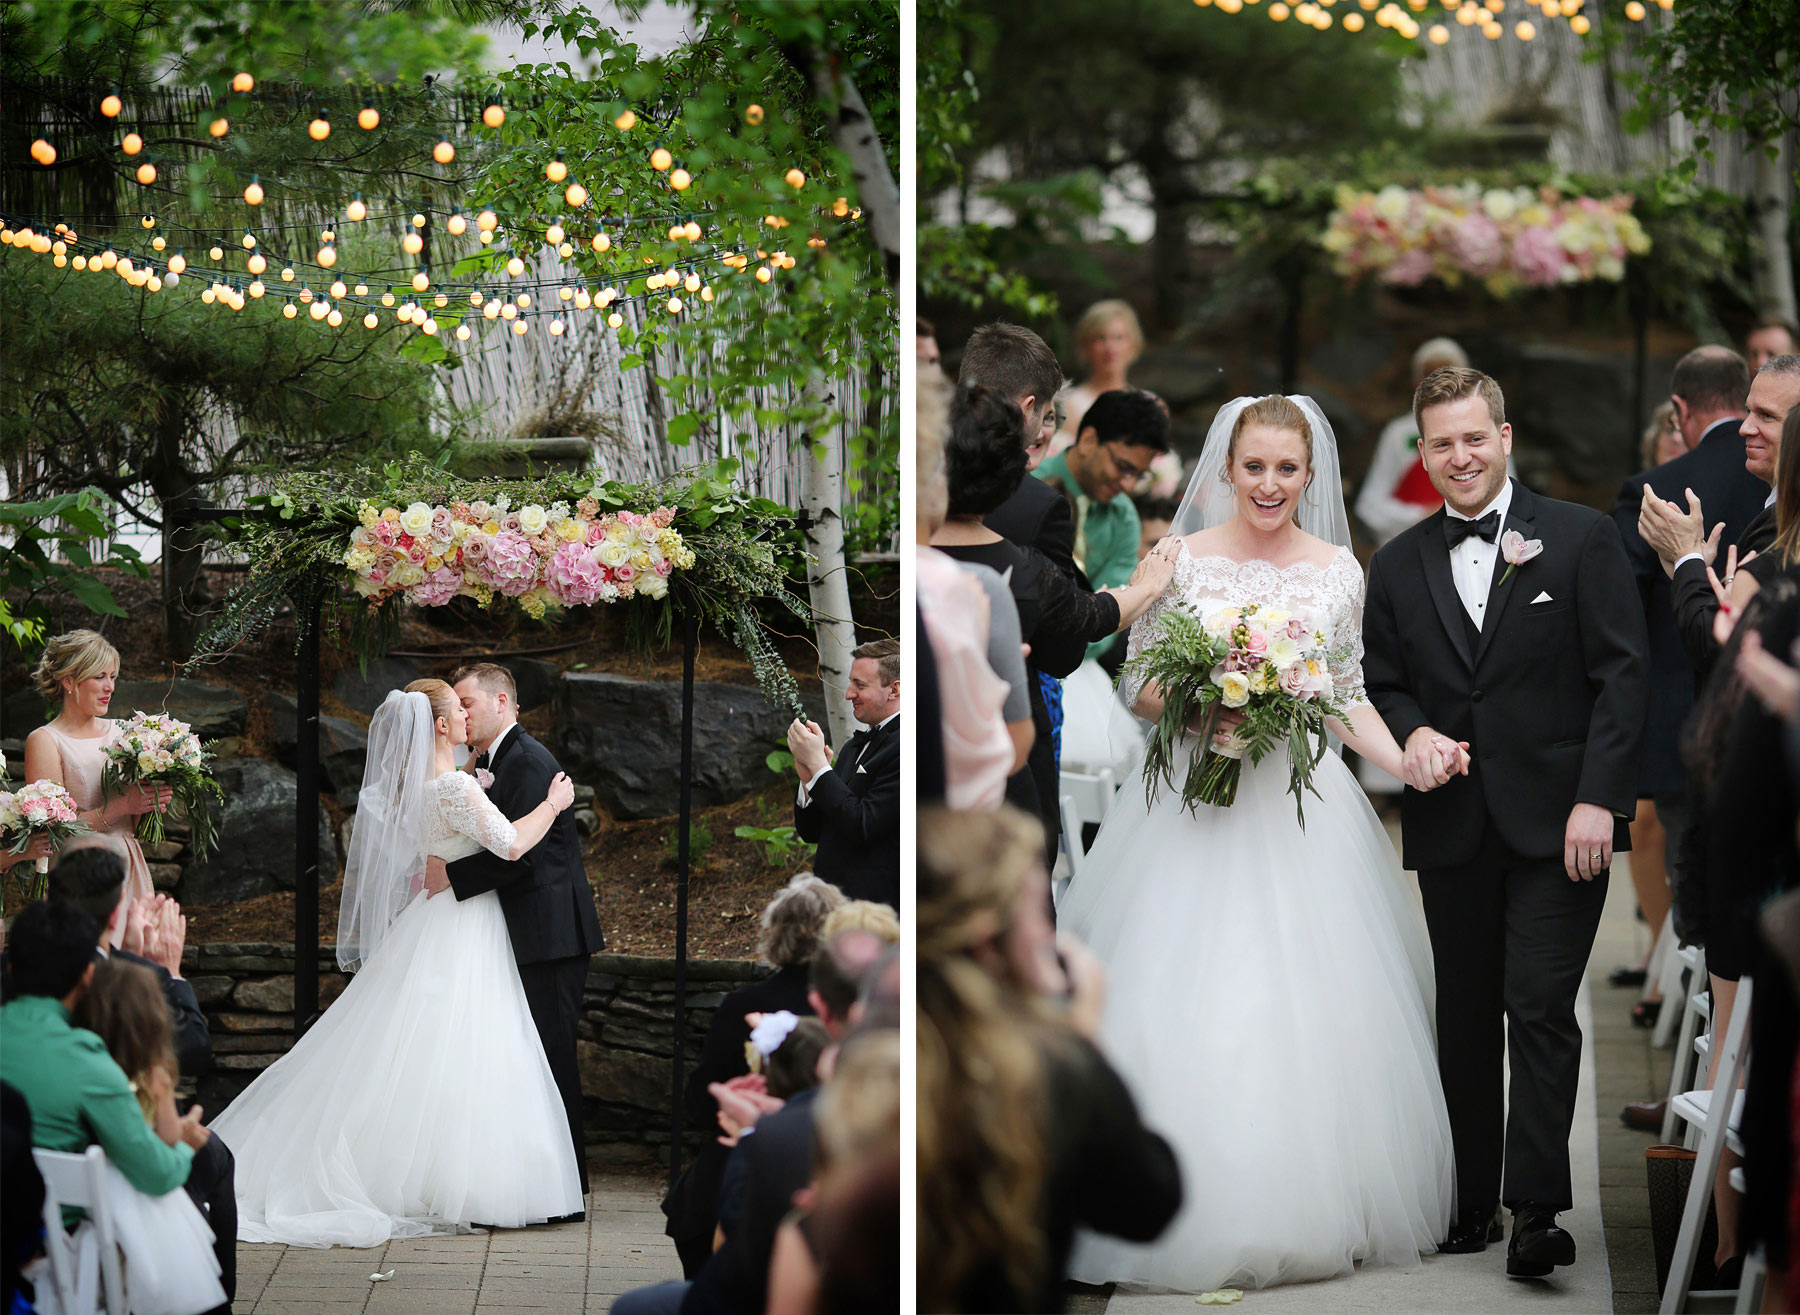 13-Minneapolis-Minnesota-Wedding-Photography-by-Vick-Photography--Van-Dusen-Mansion-Outdoor-Ceremony.jpg